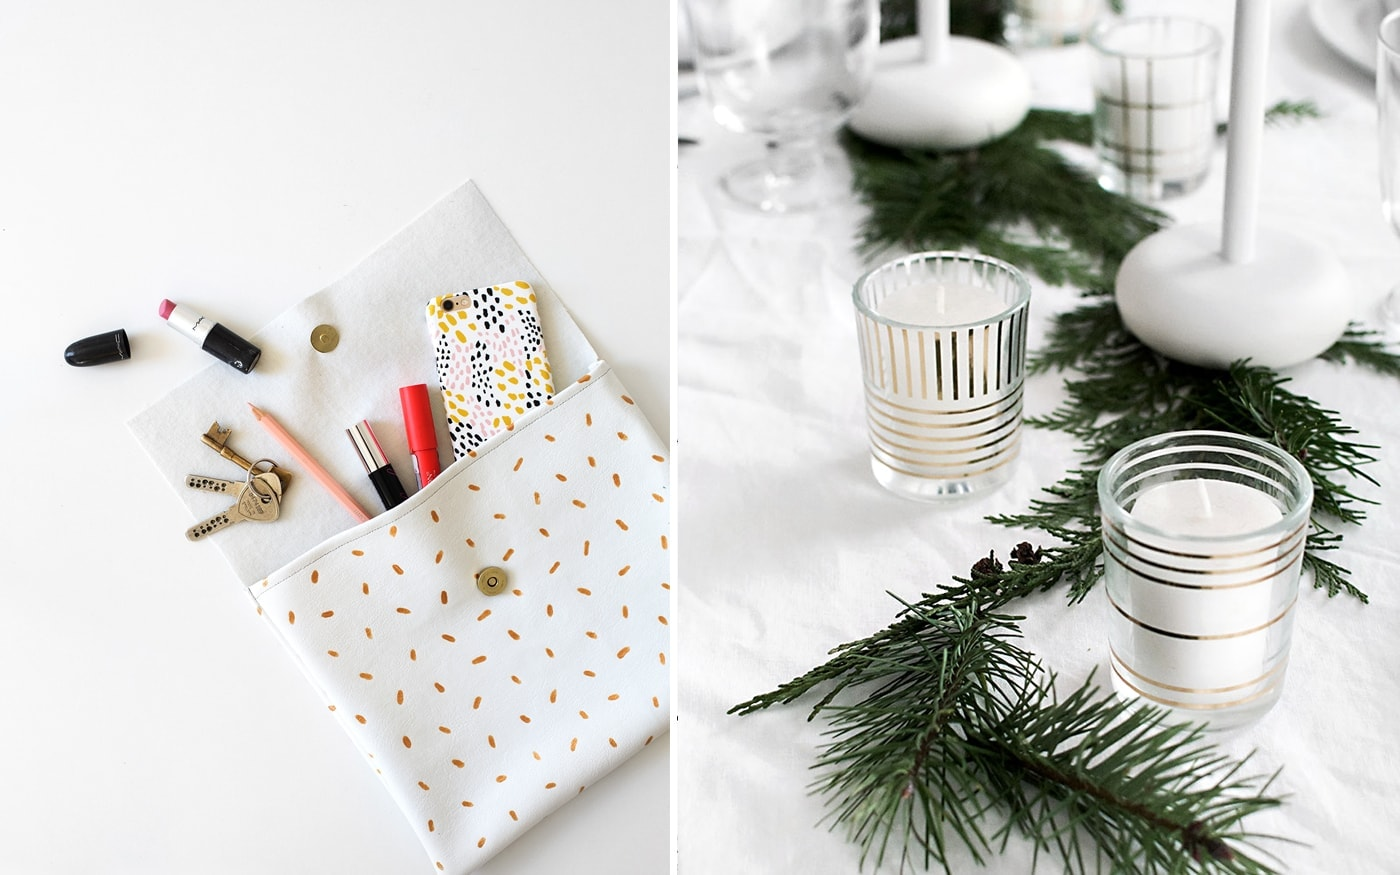 Easy homemade Christmas gifts on a budget - AOL Lifestyle